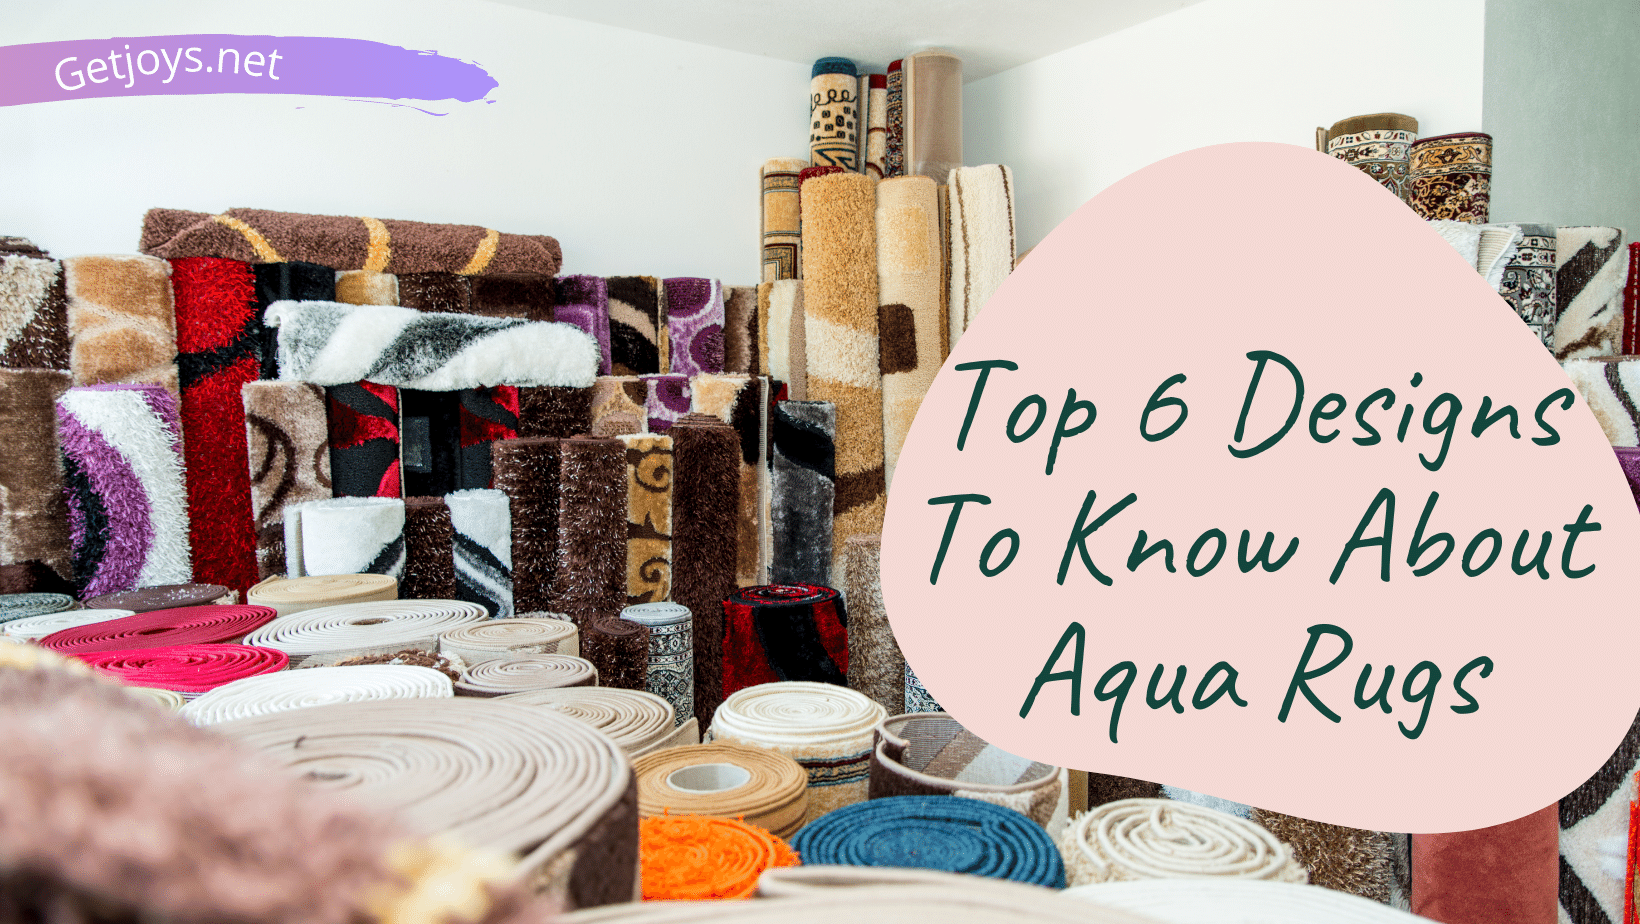 Top 6 Designs to Know About Aqua Rugs